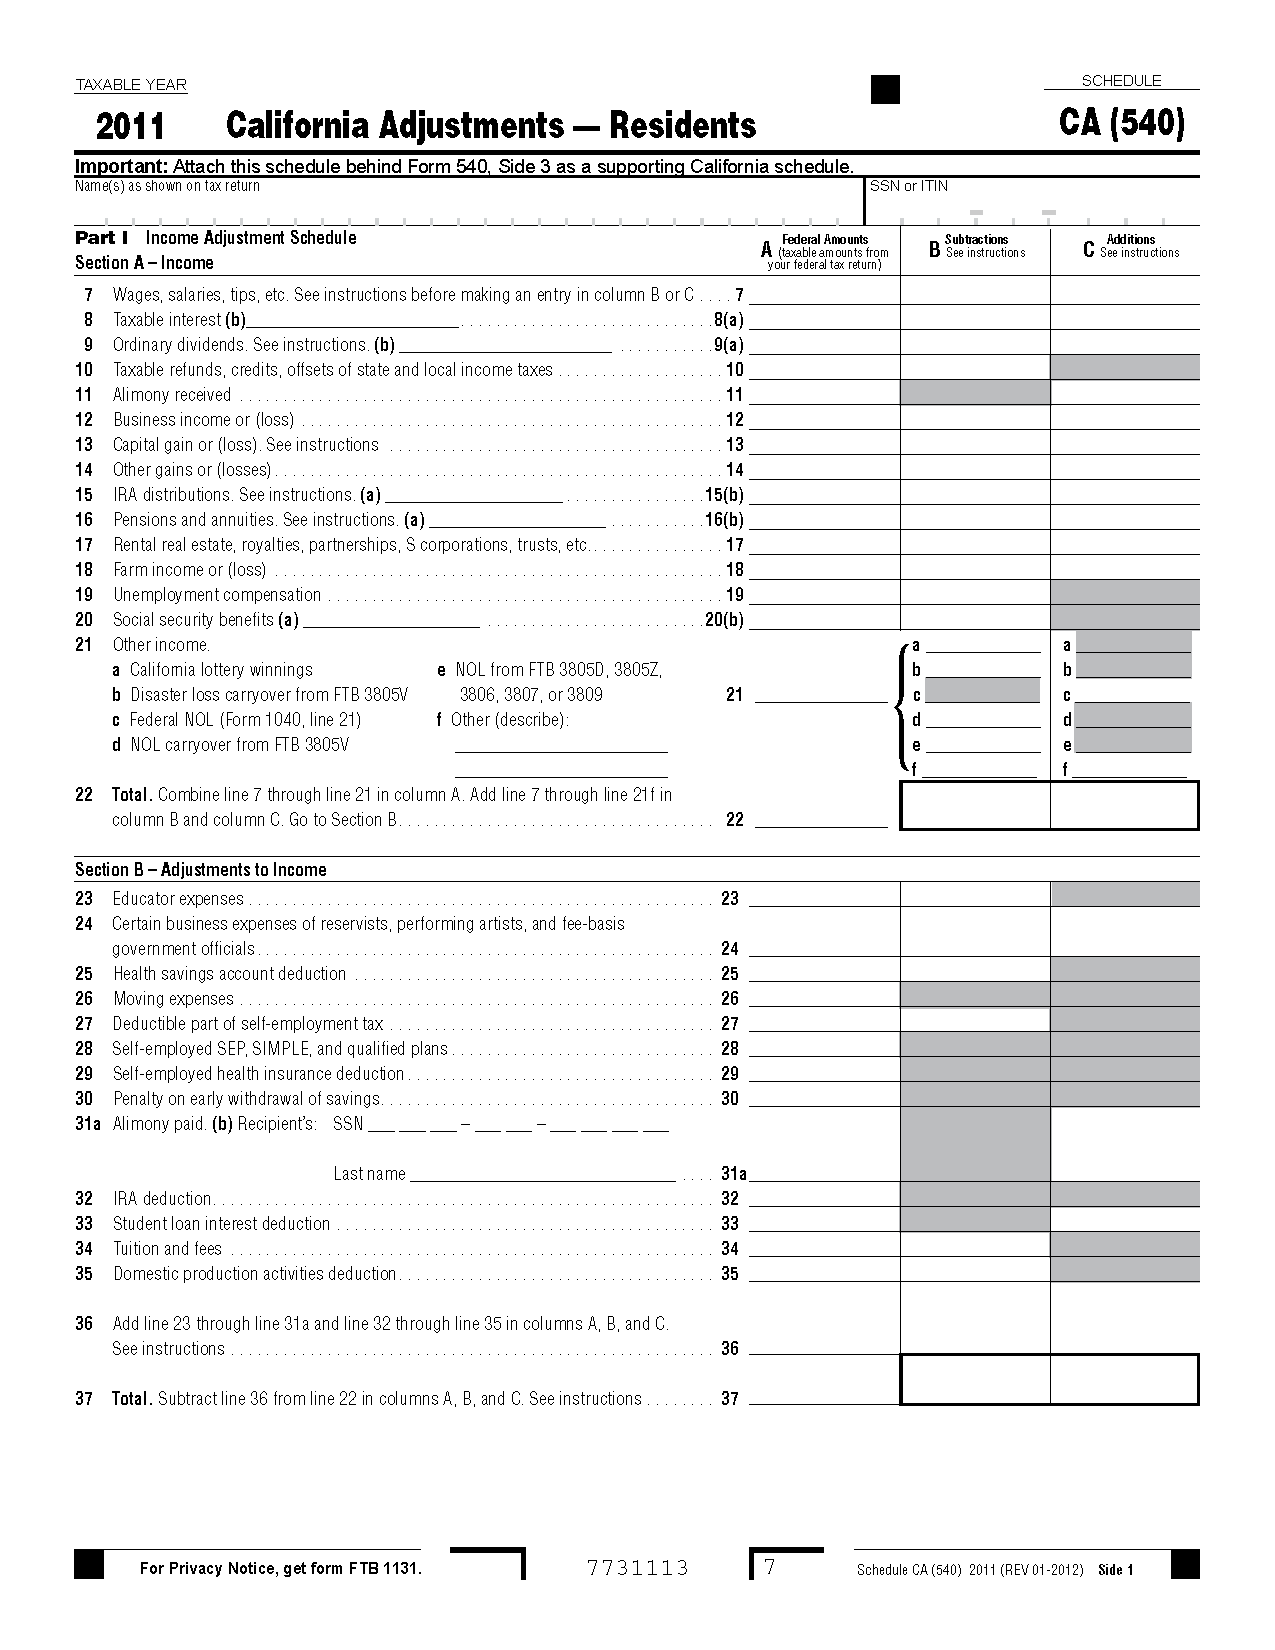 Form 540 Schedule CA California Adjustments - Residents